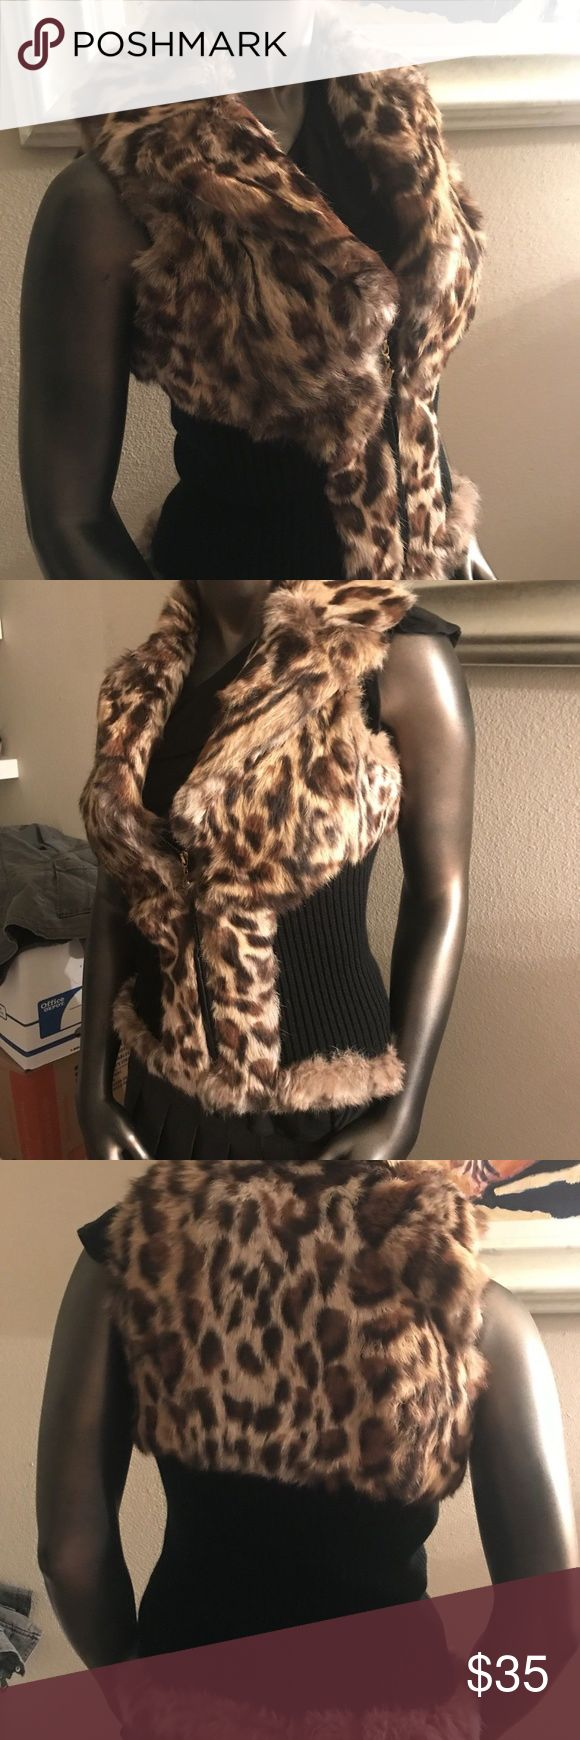 Guess by Marciano Rabbit Fur Leopard Vest Coat Guess by Marciano Real Rabbit Fur West Size Small Zipper Front Worn couple times.  Excellent condition Guess Sweaters Cardigans